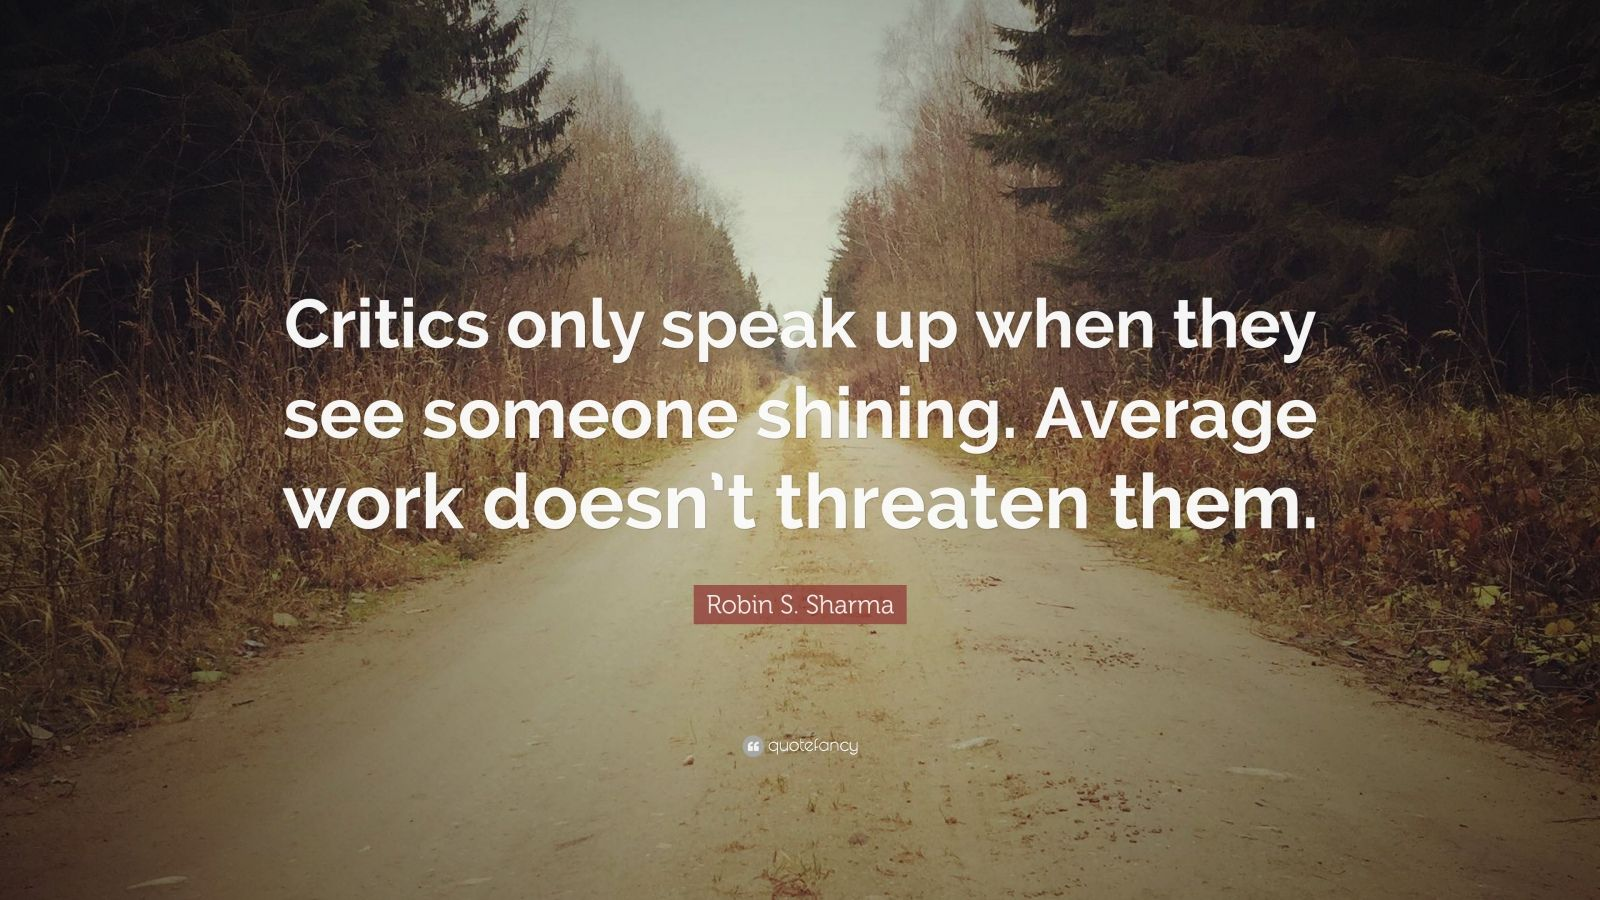 """Robin S. Sharma Quote: """"Critics only speak up when they see someone shining. Average work doesn't threaten them."""""""